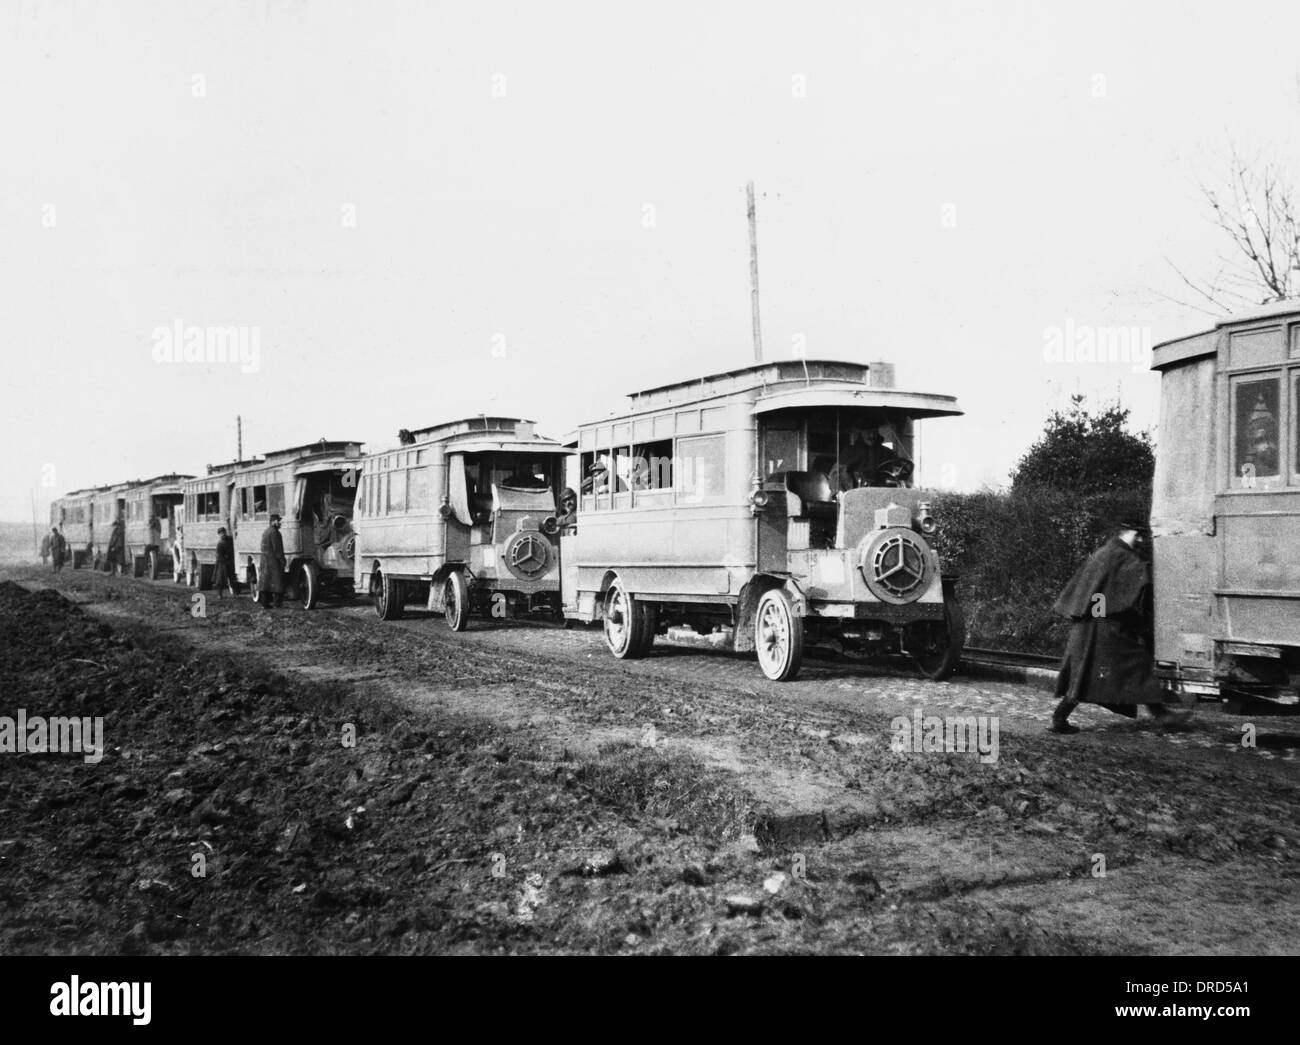 French troop transport WWI - Stock Image